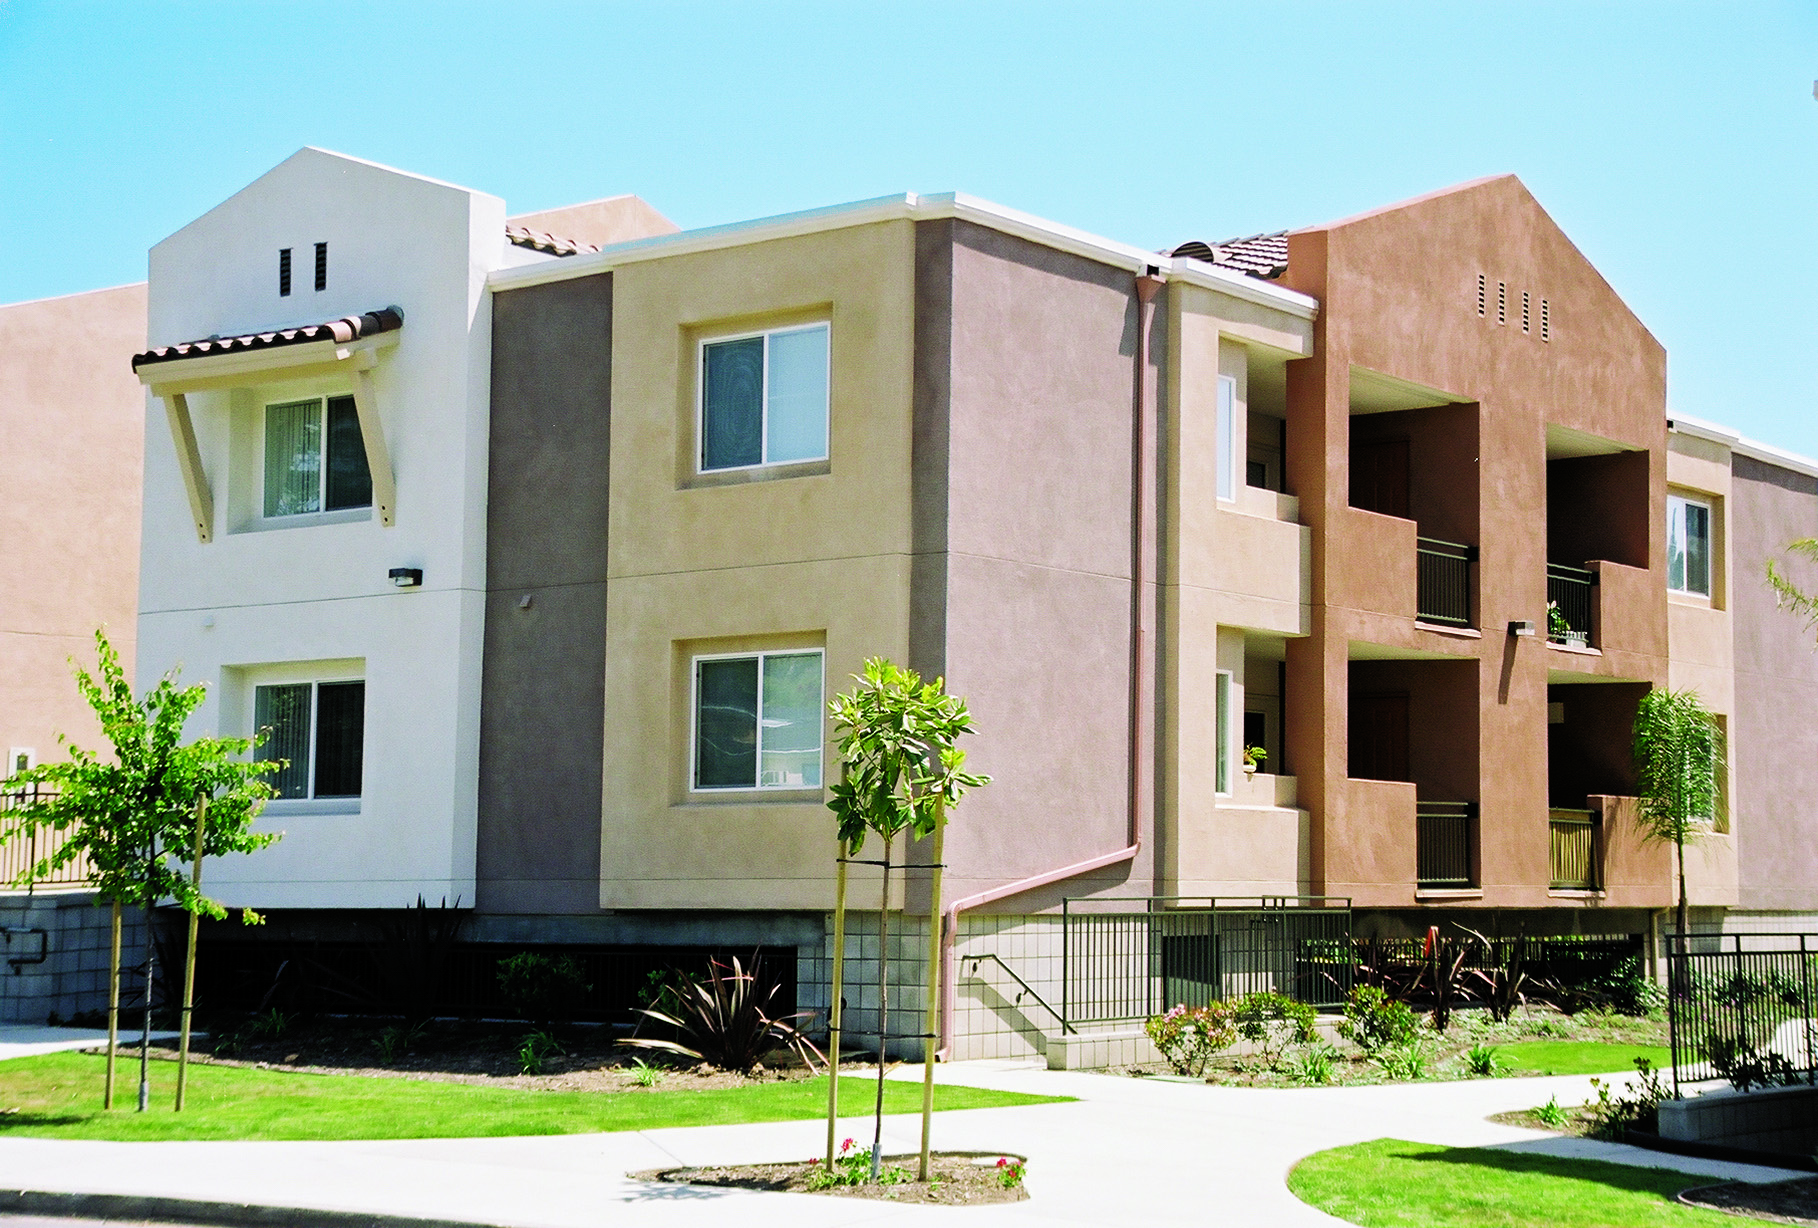 Ventaliso Apartments - Affordable Community, 609 Richmar ...